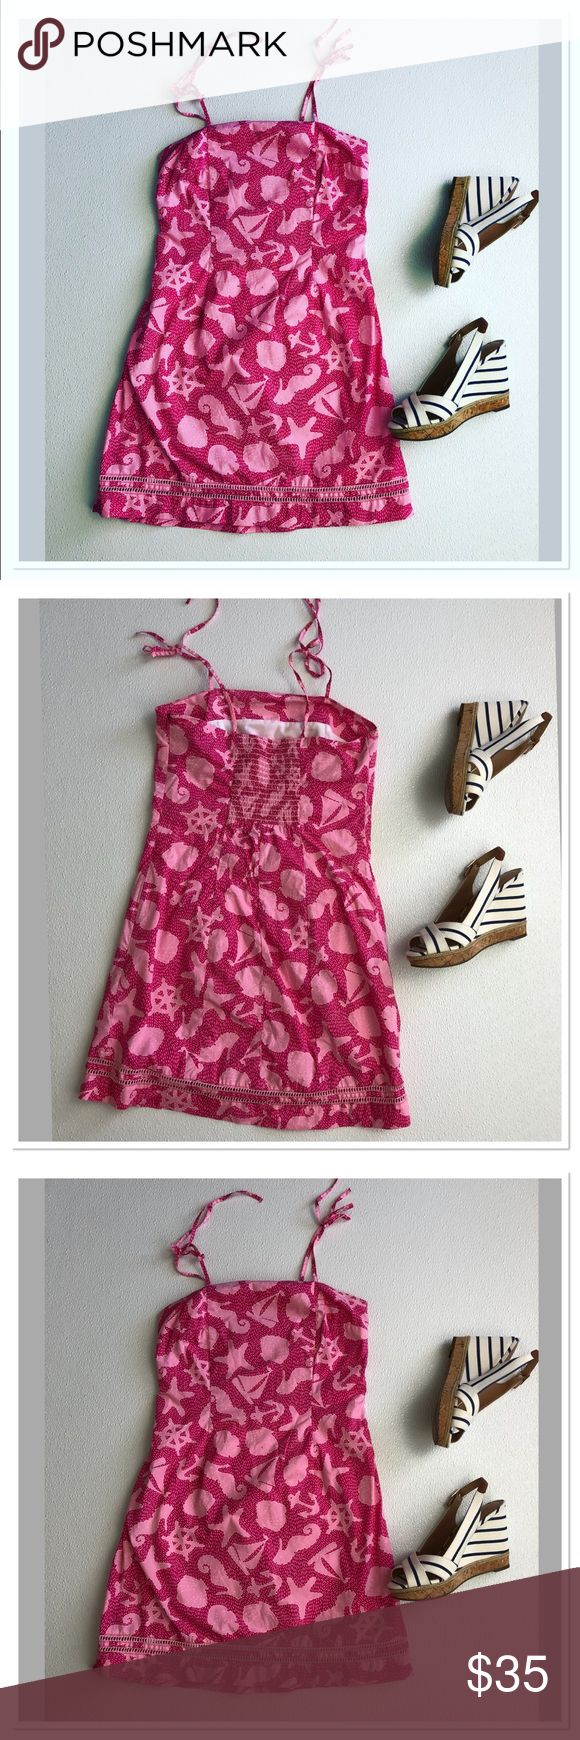 "Lilly Pulitzer seashells tie spaghetti strap dress Lilly Pulitzer seashell nautical print tie spaghetti strap eyelet dress made of 100% cotton. Fully lined dress featuring adjustable tie straps, elastic back side zip closure eyelet hemline. Bright pink summer pattern. Little spots as pictured, very small and barely noticeable due to a busy print, price reflects. Otherwise, great condition. Cute dress, cocktail dress, graduation dress. Size 6  Pit to pit: 16"" Length: 33"" Waist: 14,5"" Lilly…"